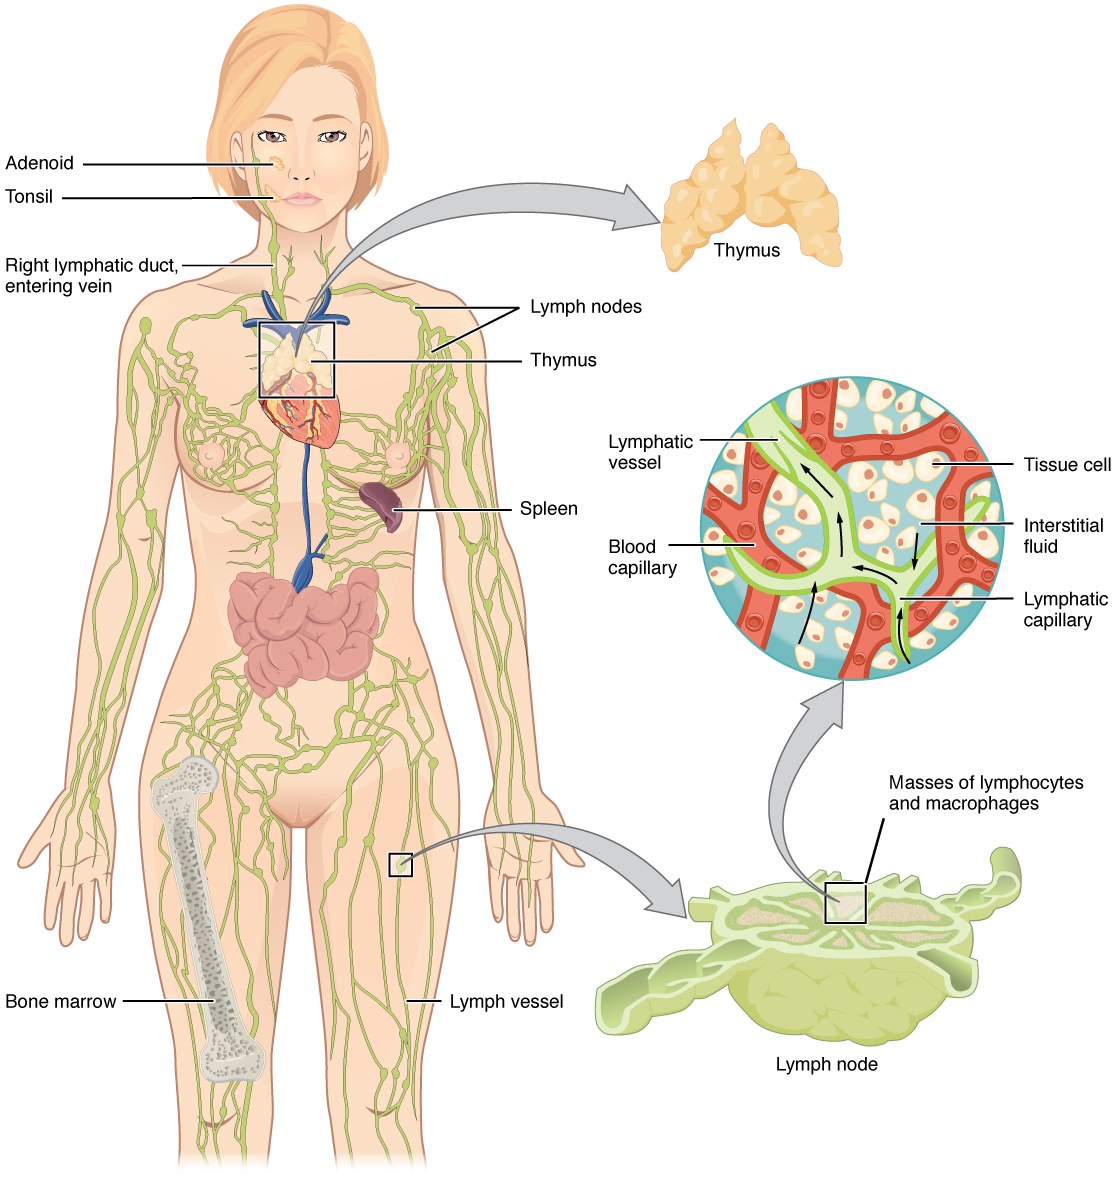 the left panel shows a female human body, and the entire lymphatic system  is shown